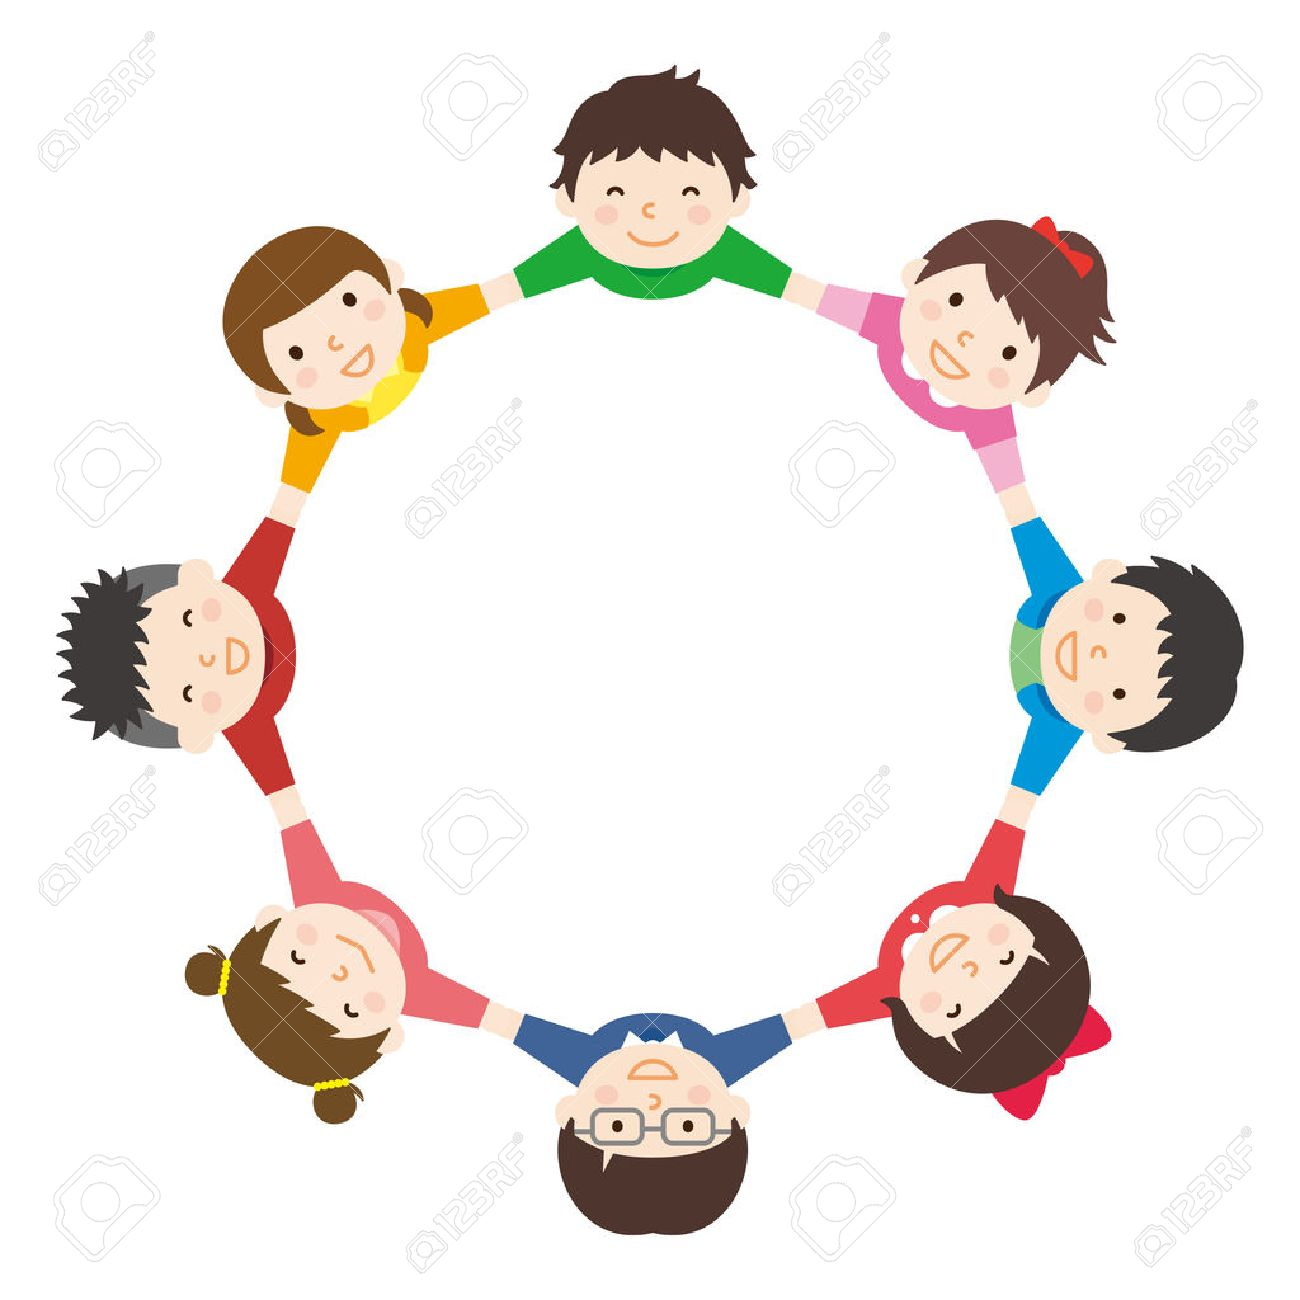 children hold hands royalty free cliparts vectors and stock rh 123rf com Helping Hands Clip Art Giving Hands Clip Art